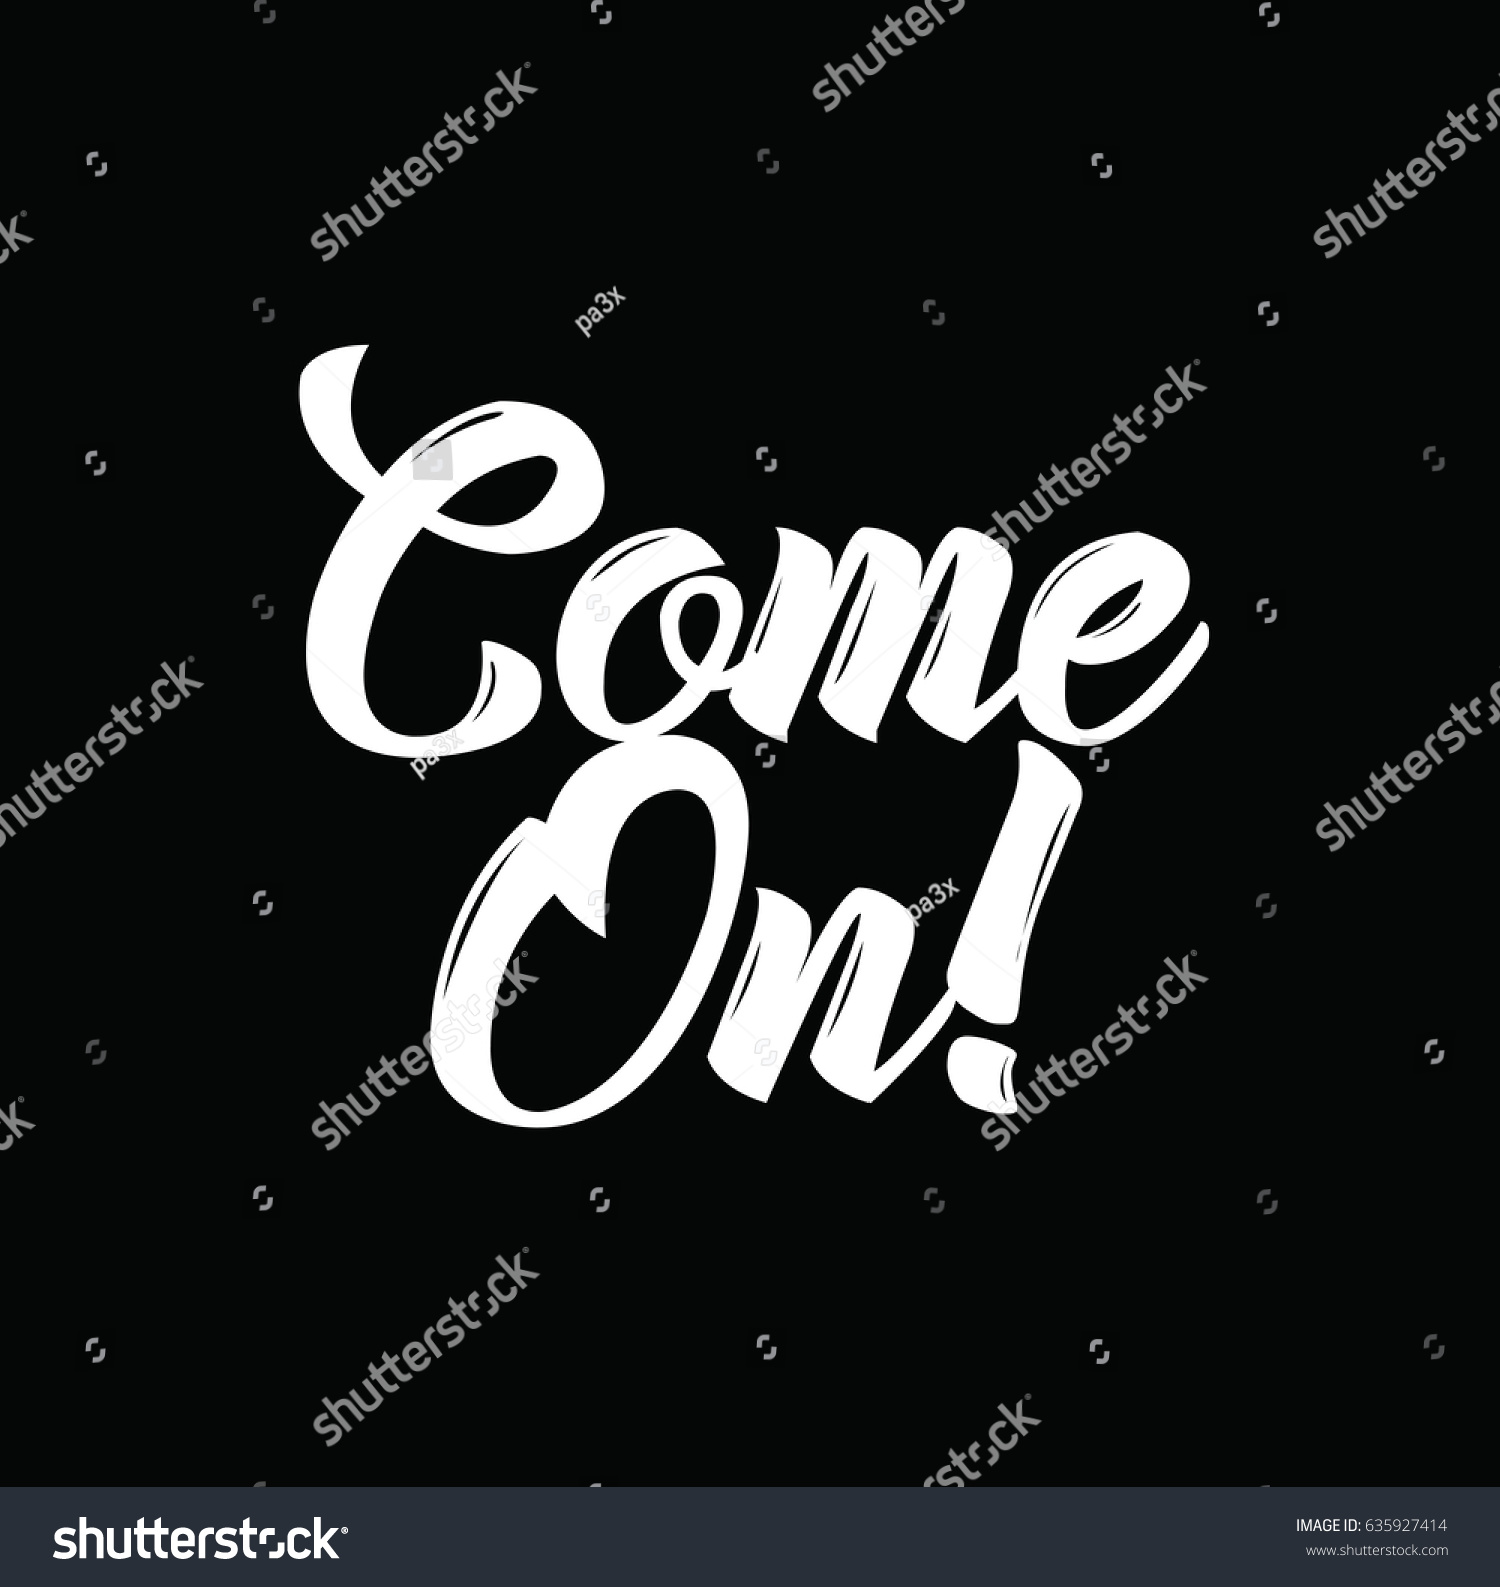 Come On Text Design Vector Calligraphy Stock Vector